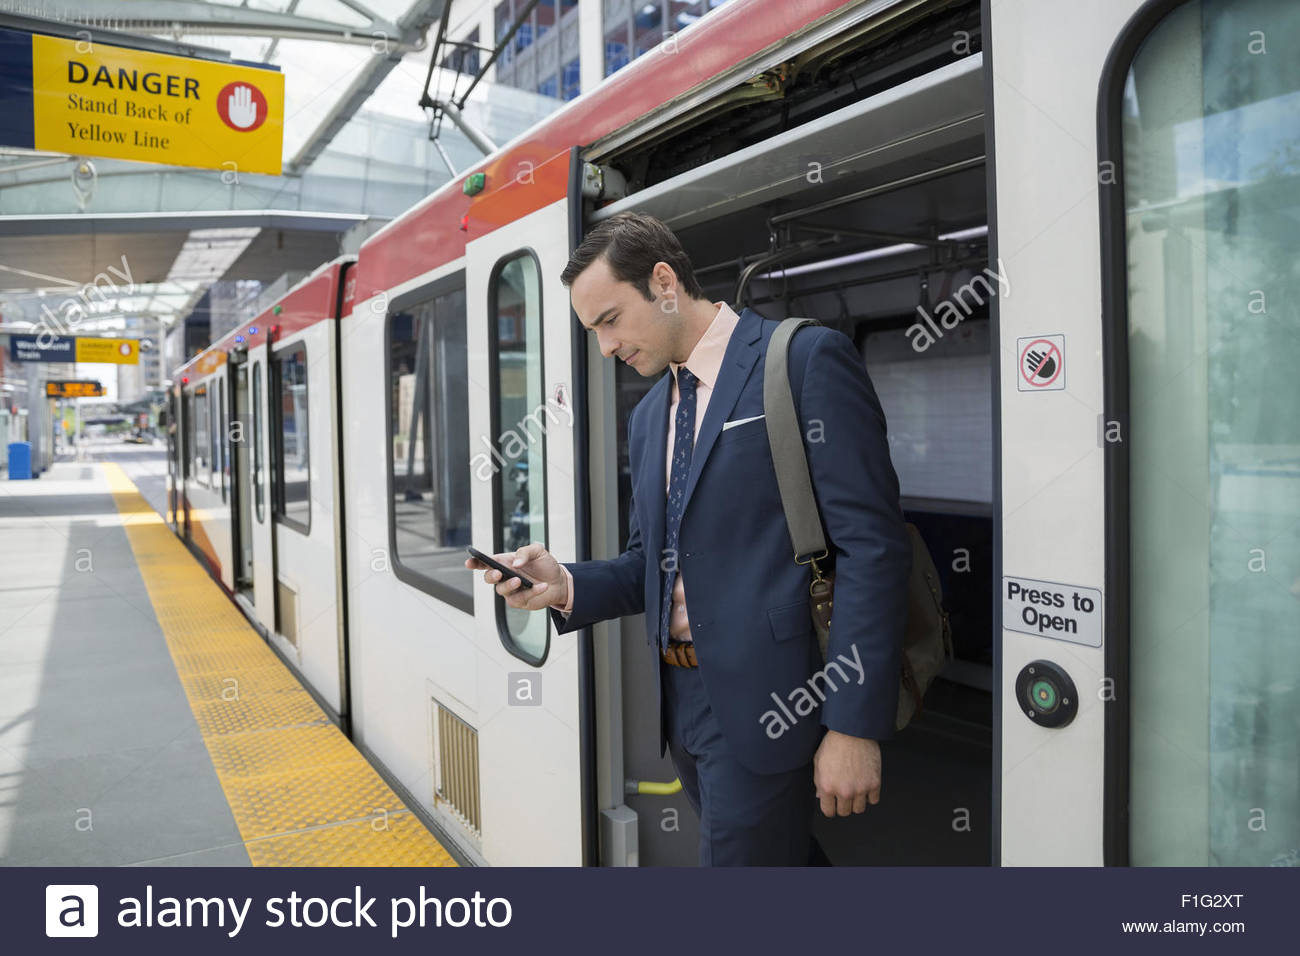 Businessman disembarking train texting with cell phone - Stock Image